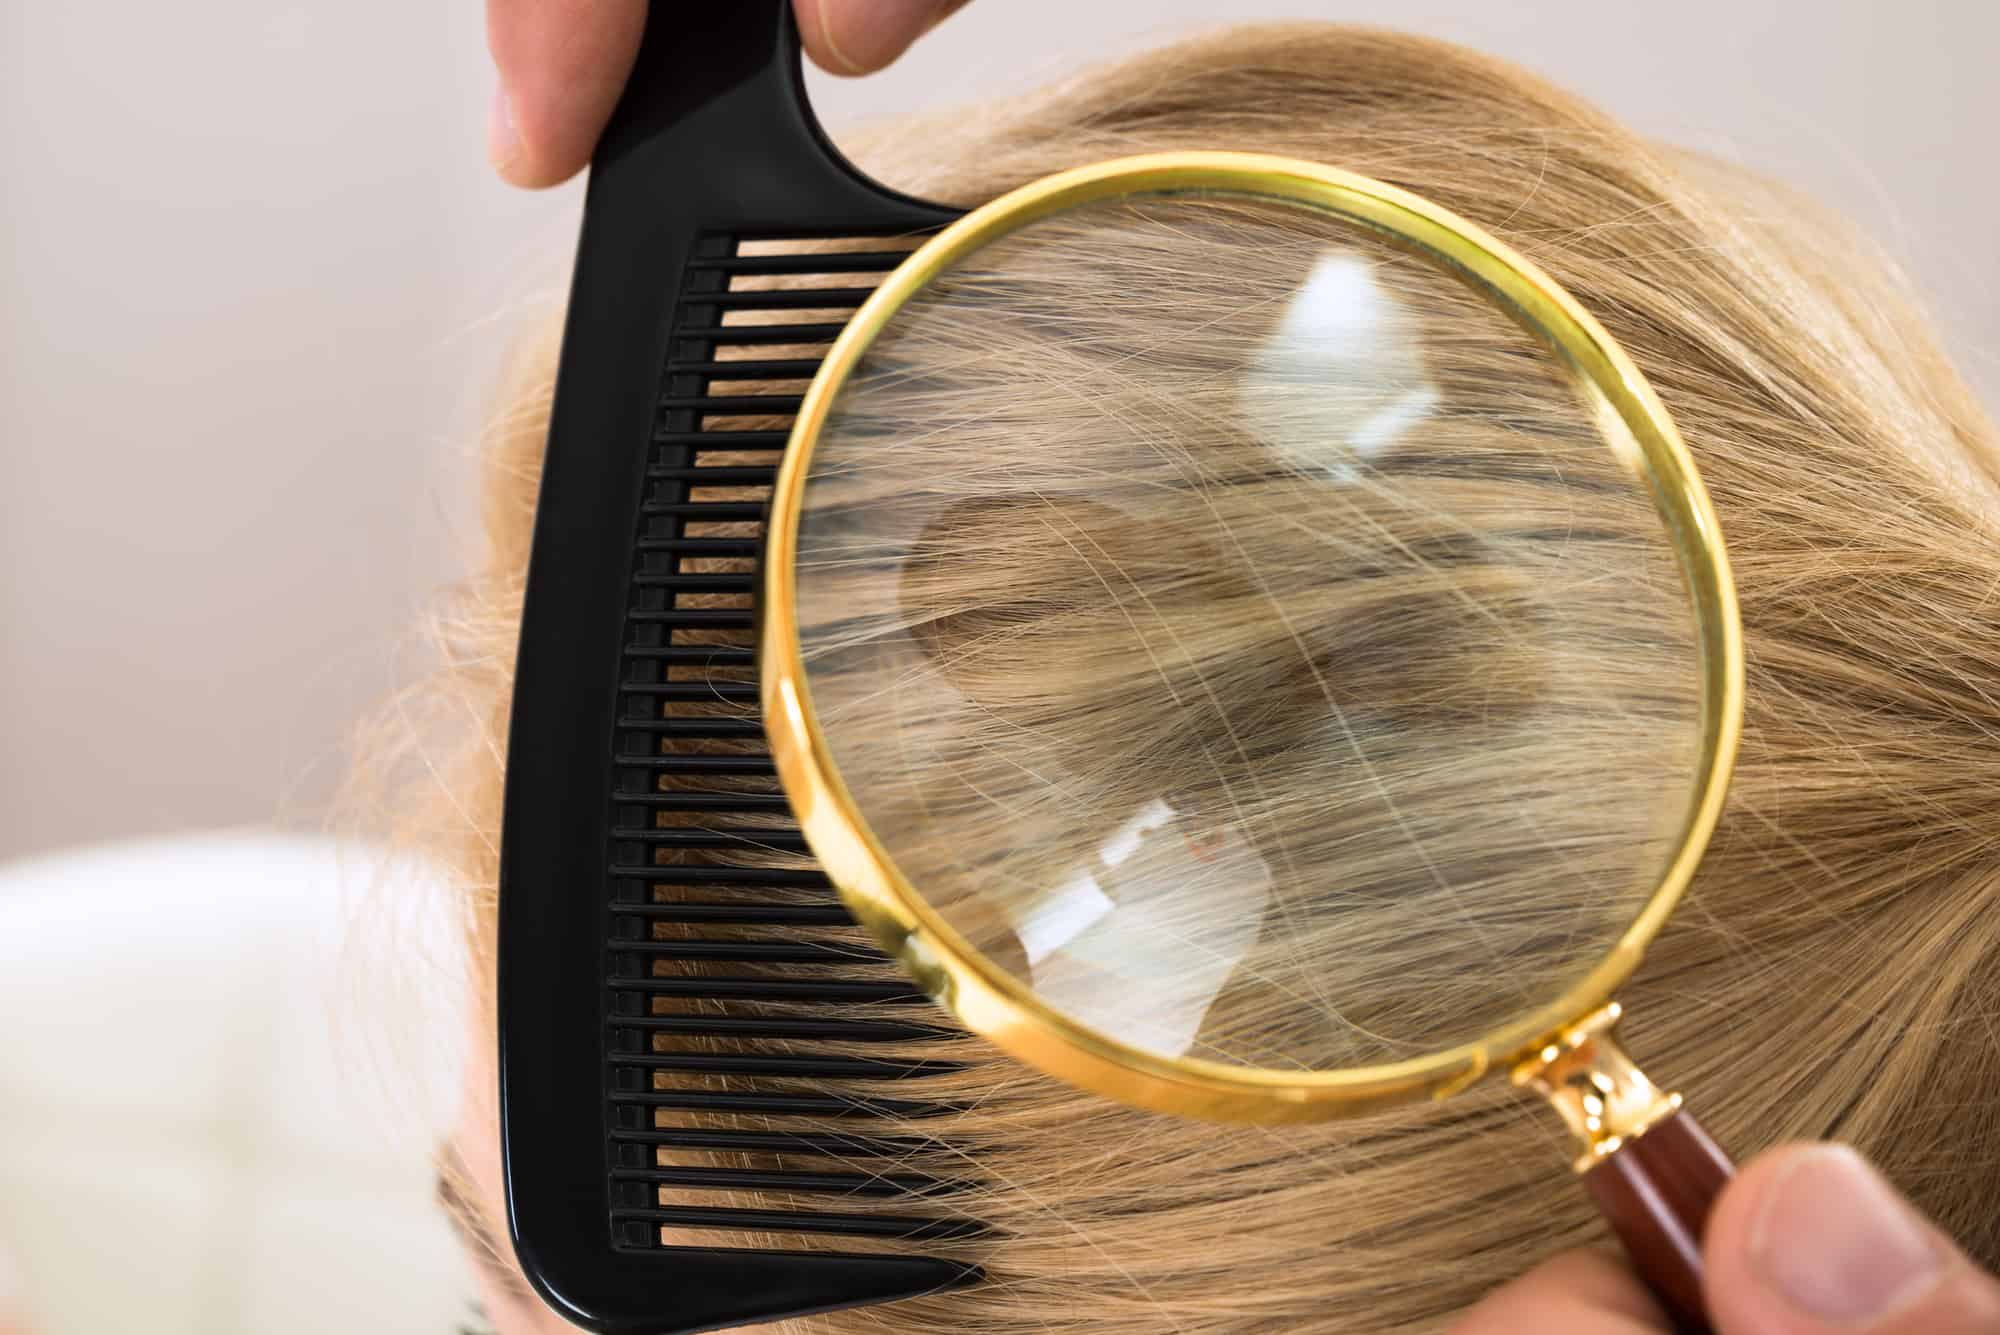 Close-up Dermatologist Looking At Patient's Blonde Hair Through Magnifying Glass